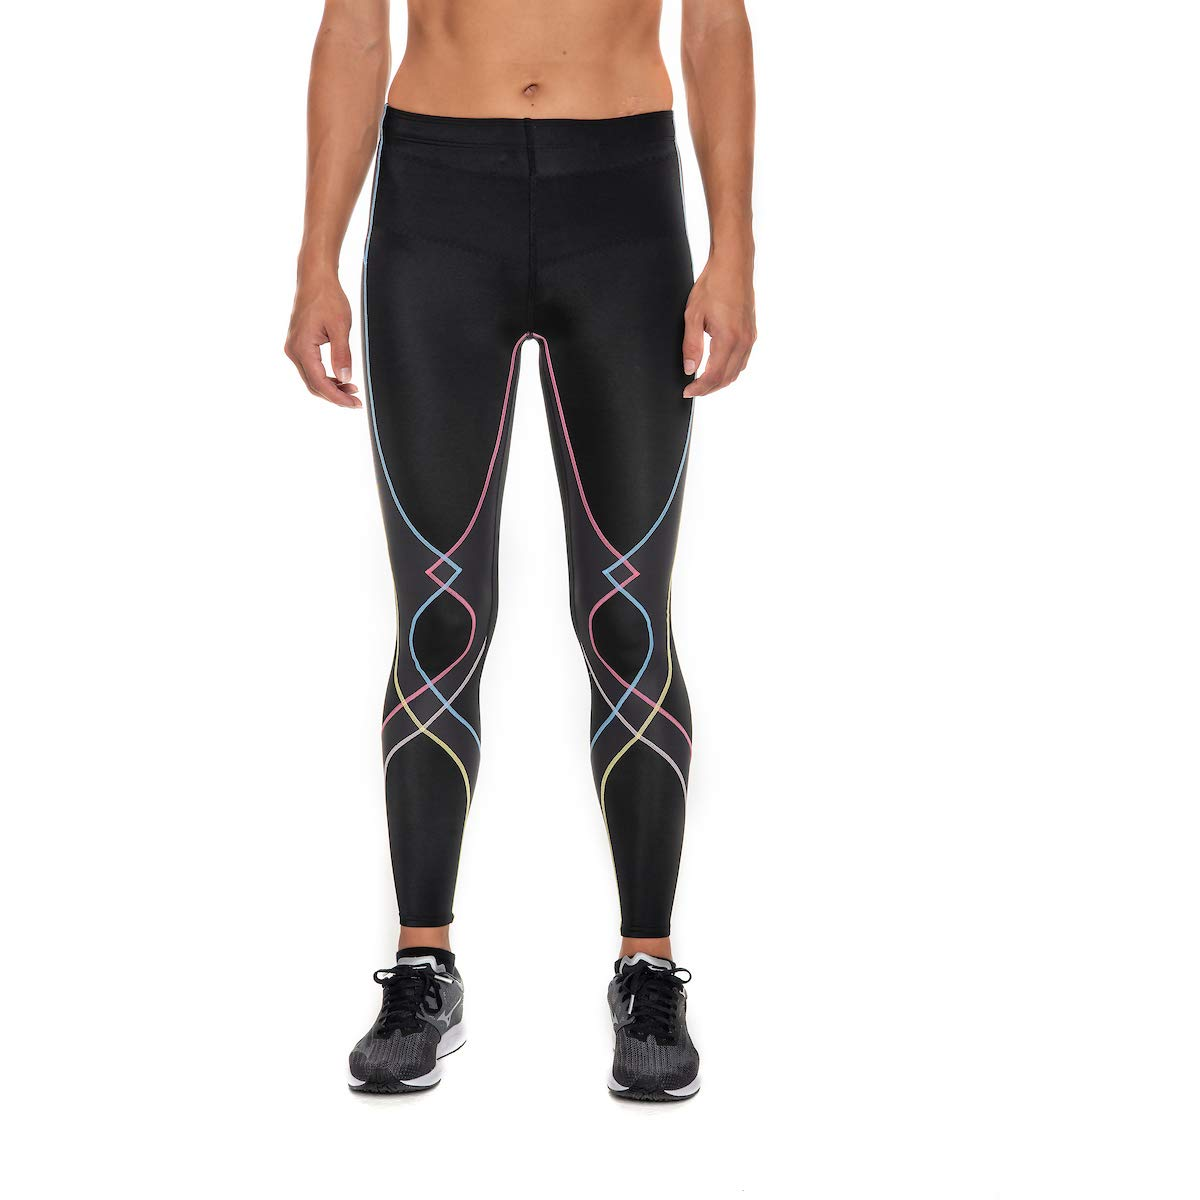 CW-X Women's Stabilyx Joint Support Compression Tight, Black/Rustic Rainbow, Medium by CW-X